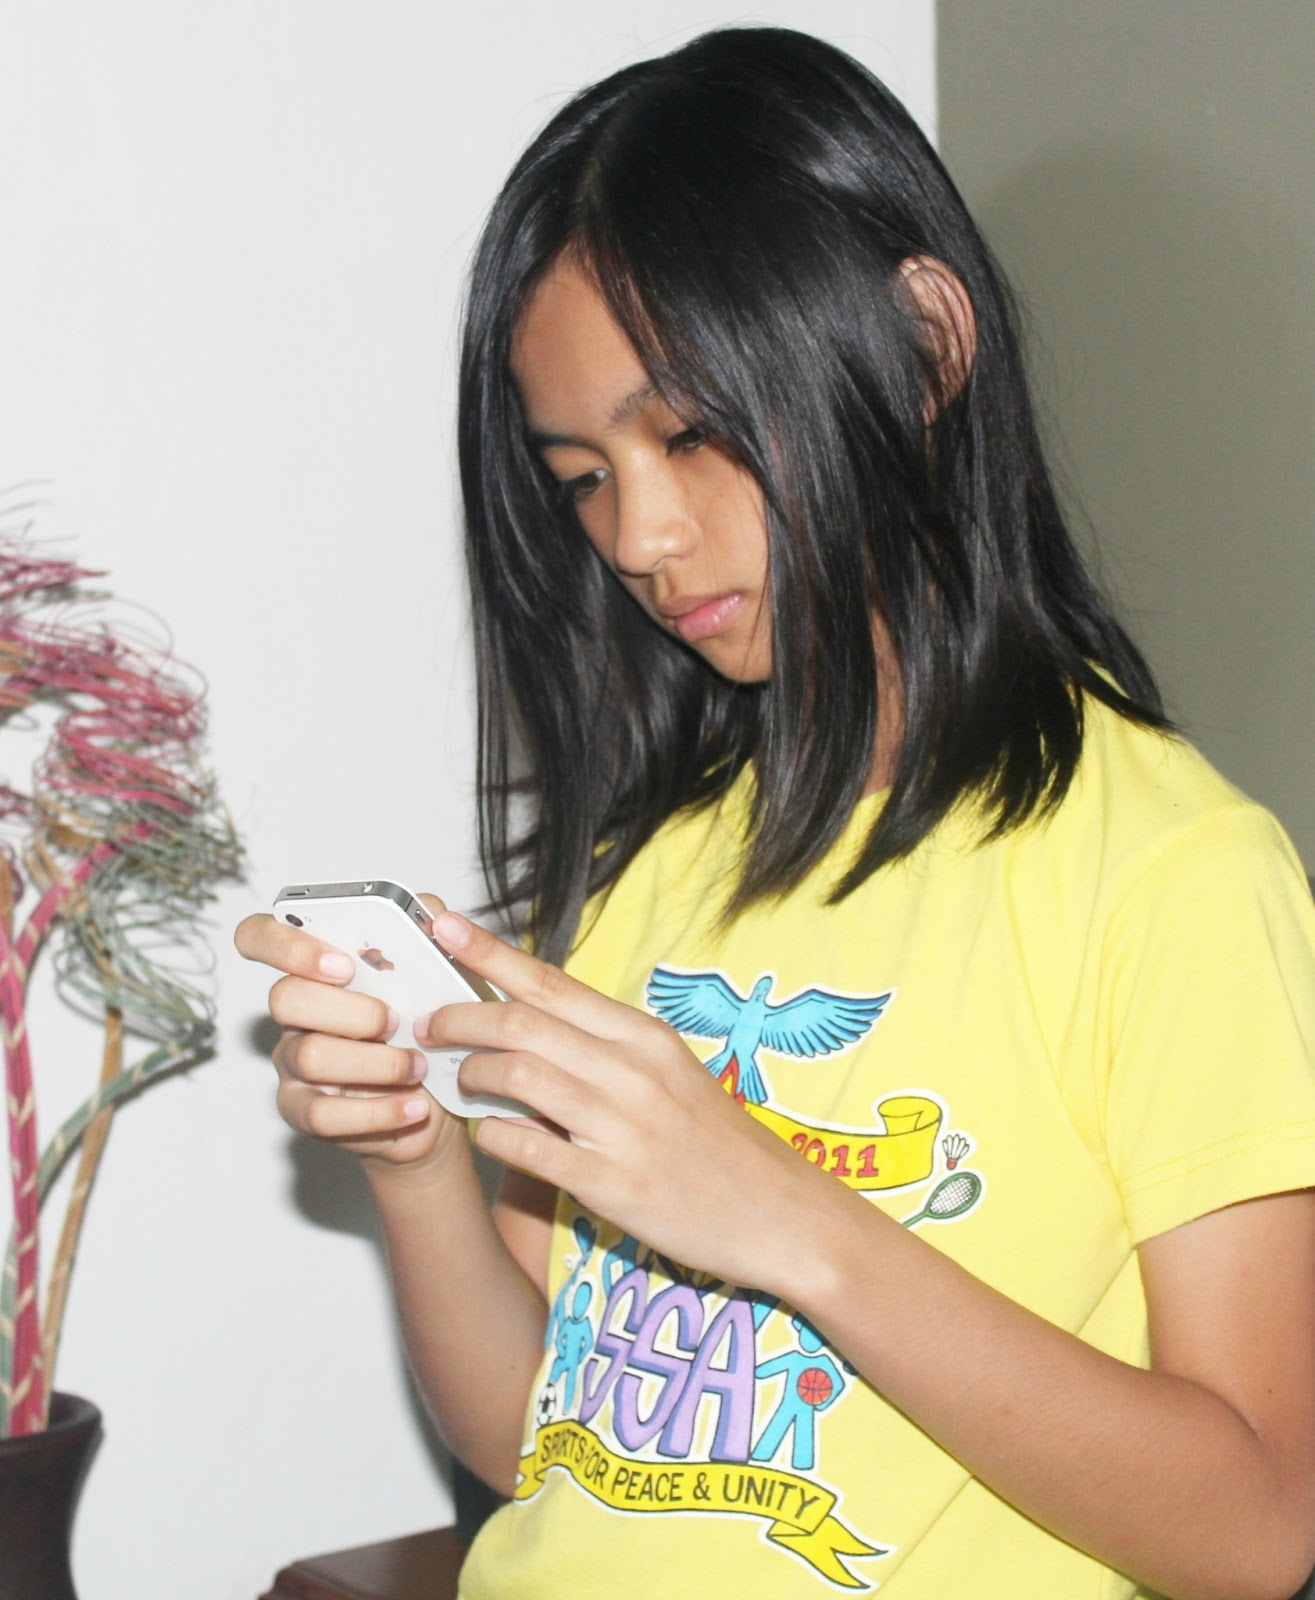 Nics' Limited Diary!: STOLEN SHOTS OF ME :O